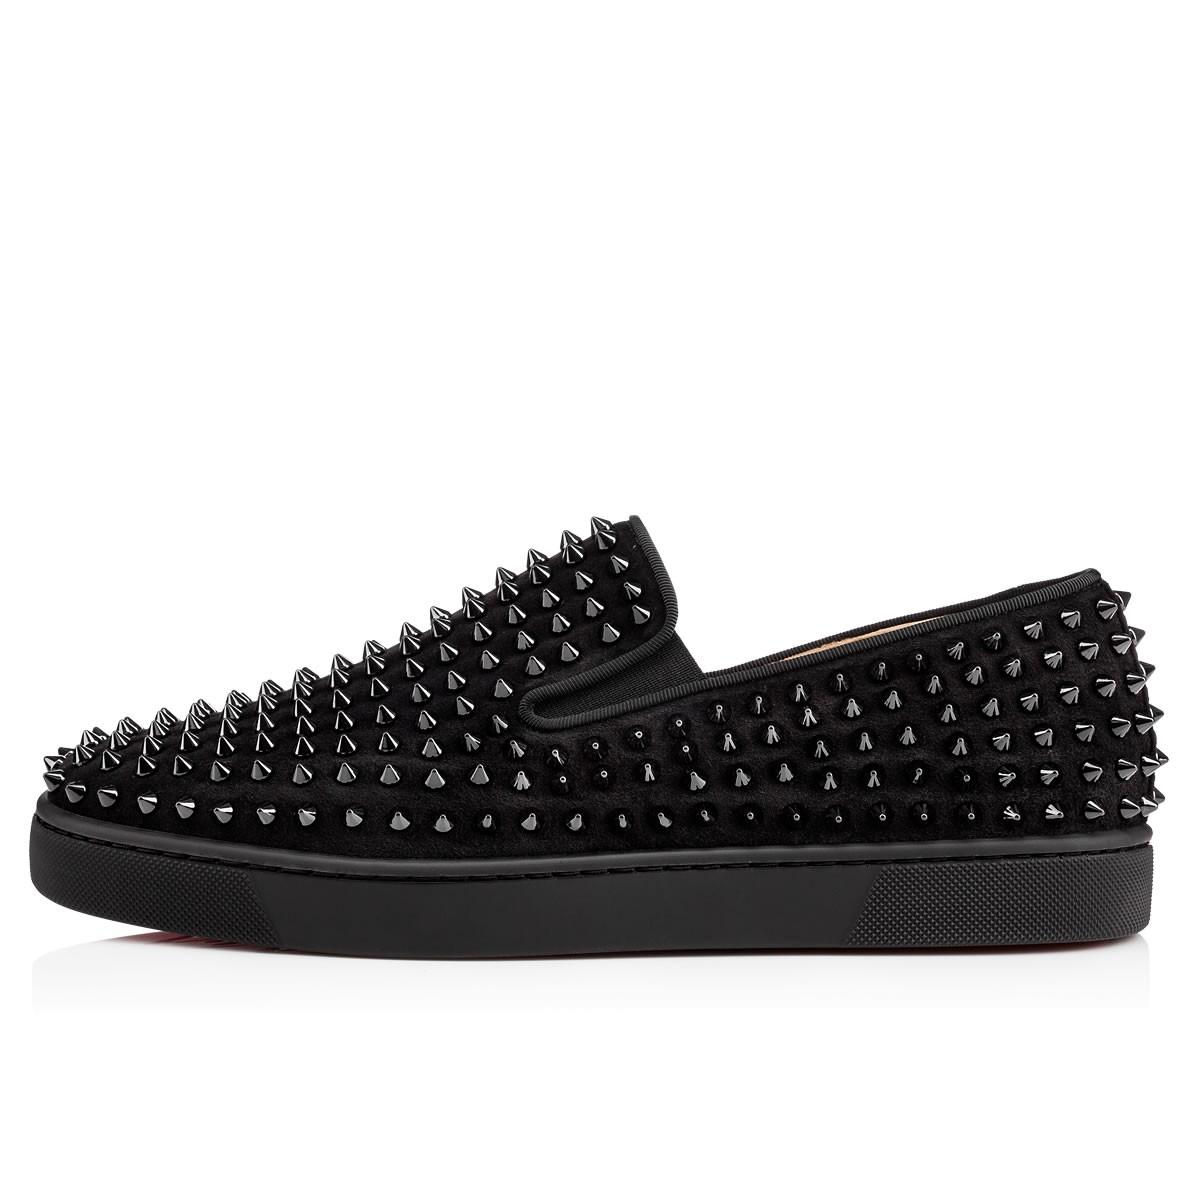 4c98b074aa92 ... amazon christian louboutin roller boat spike flat trainer black  athletic. 123456789101112 eed1e 89d29